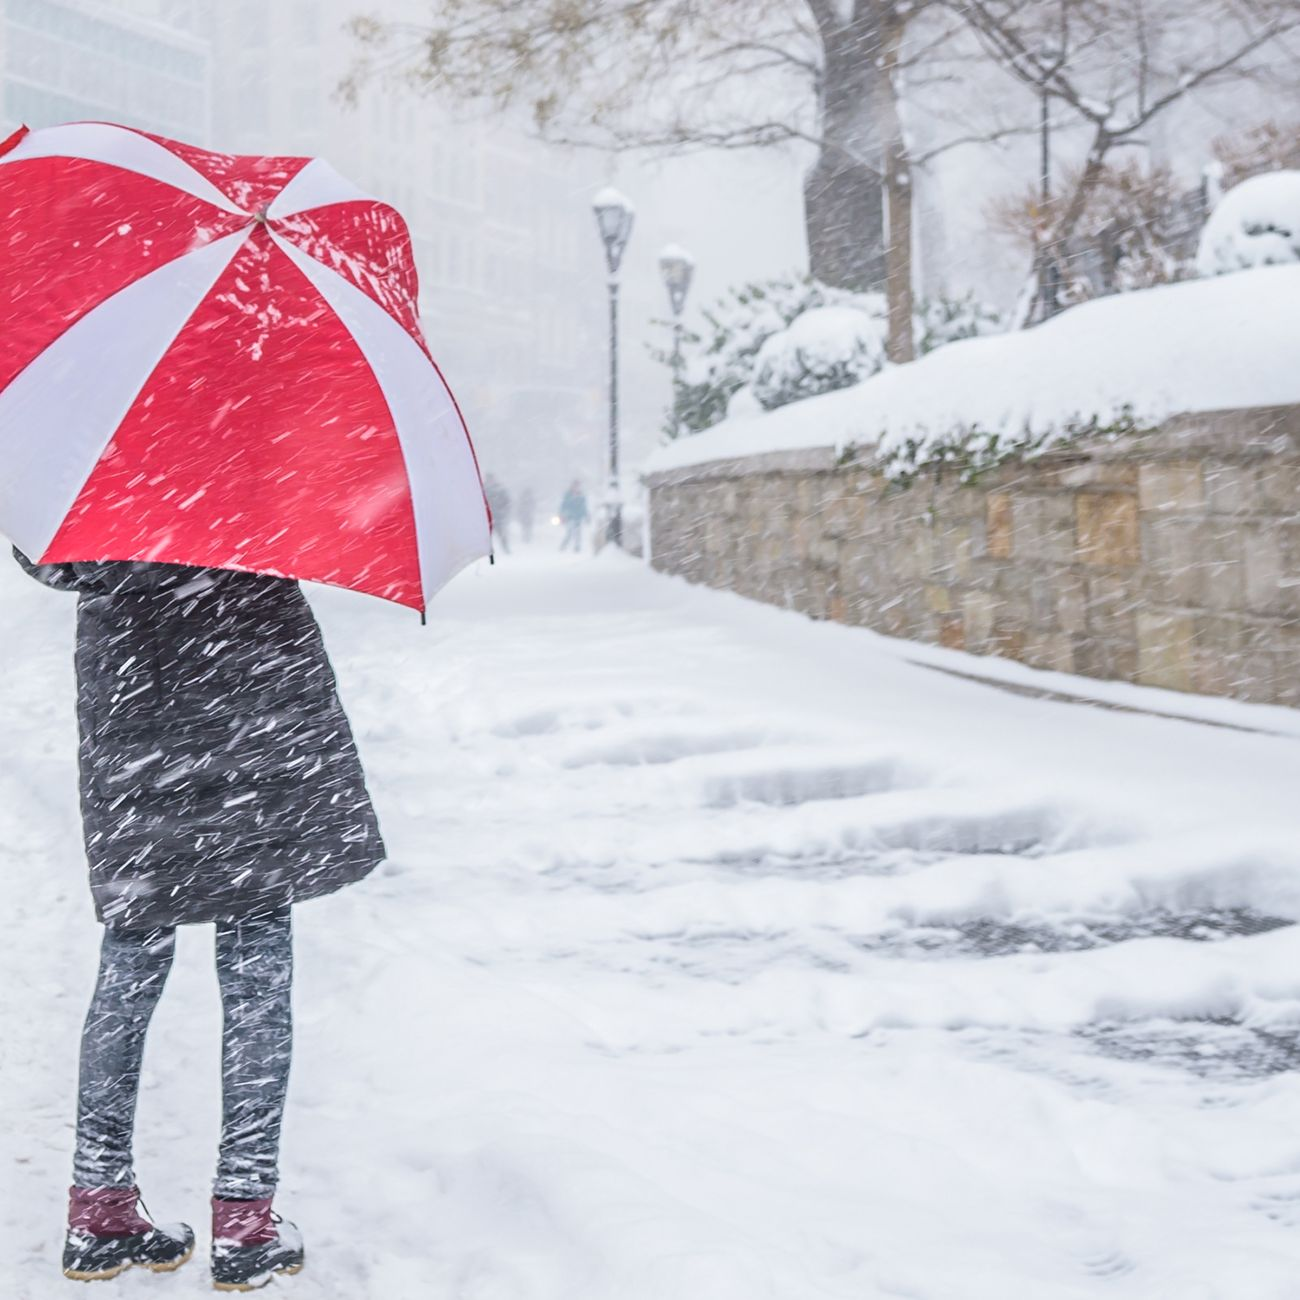 Brace Yourselves, a Dangerous Nor'Easter Is Coming to Ruin Your Weekend